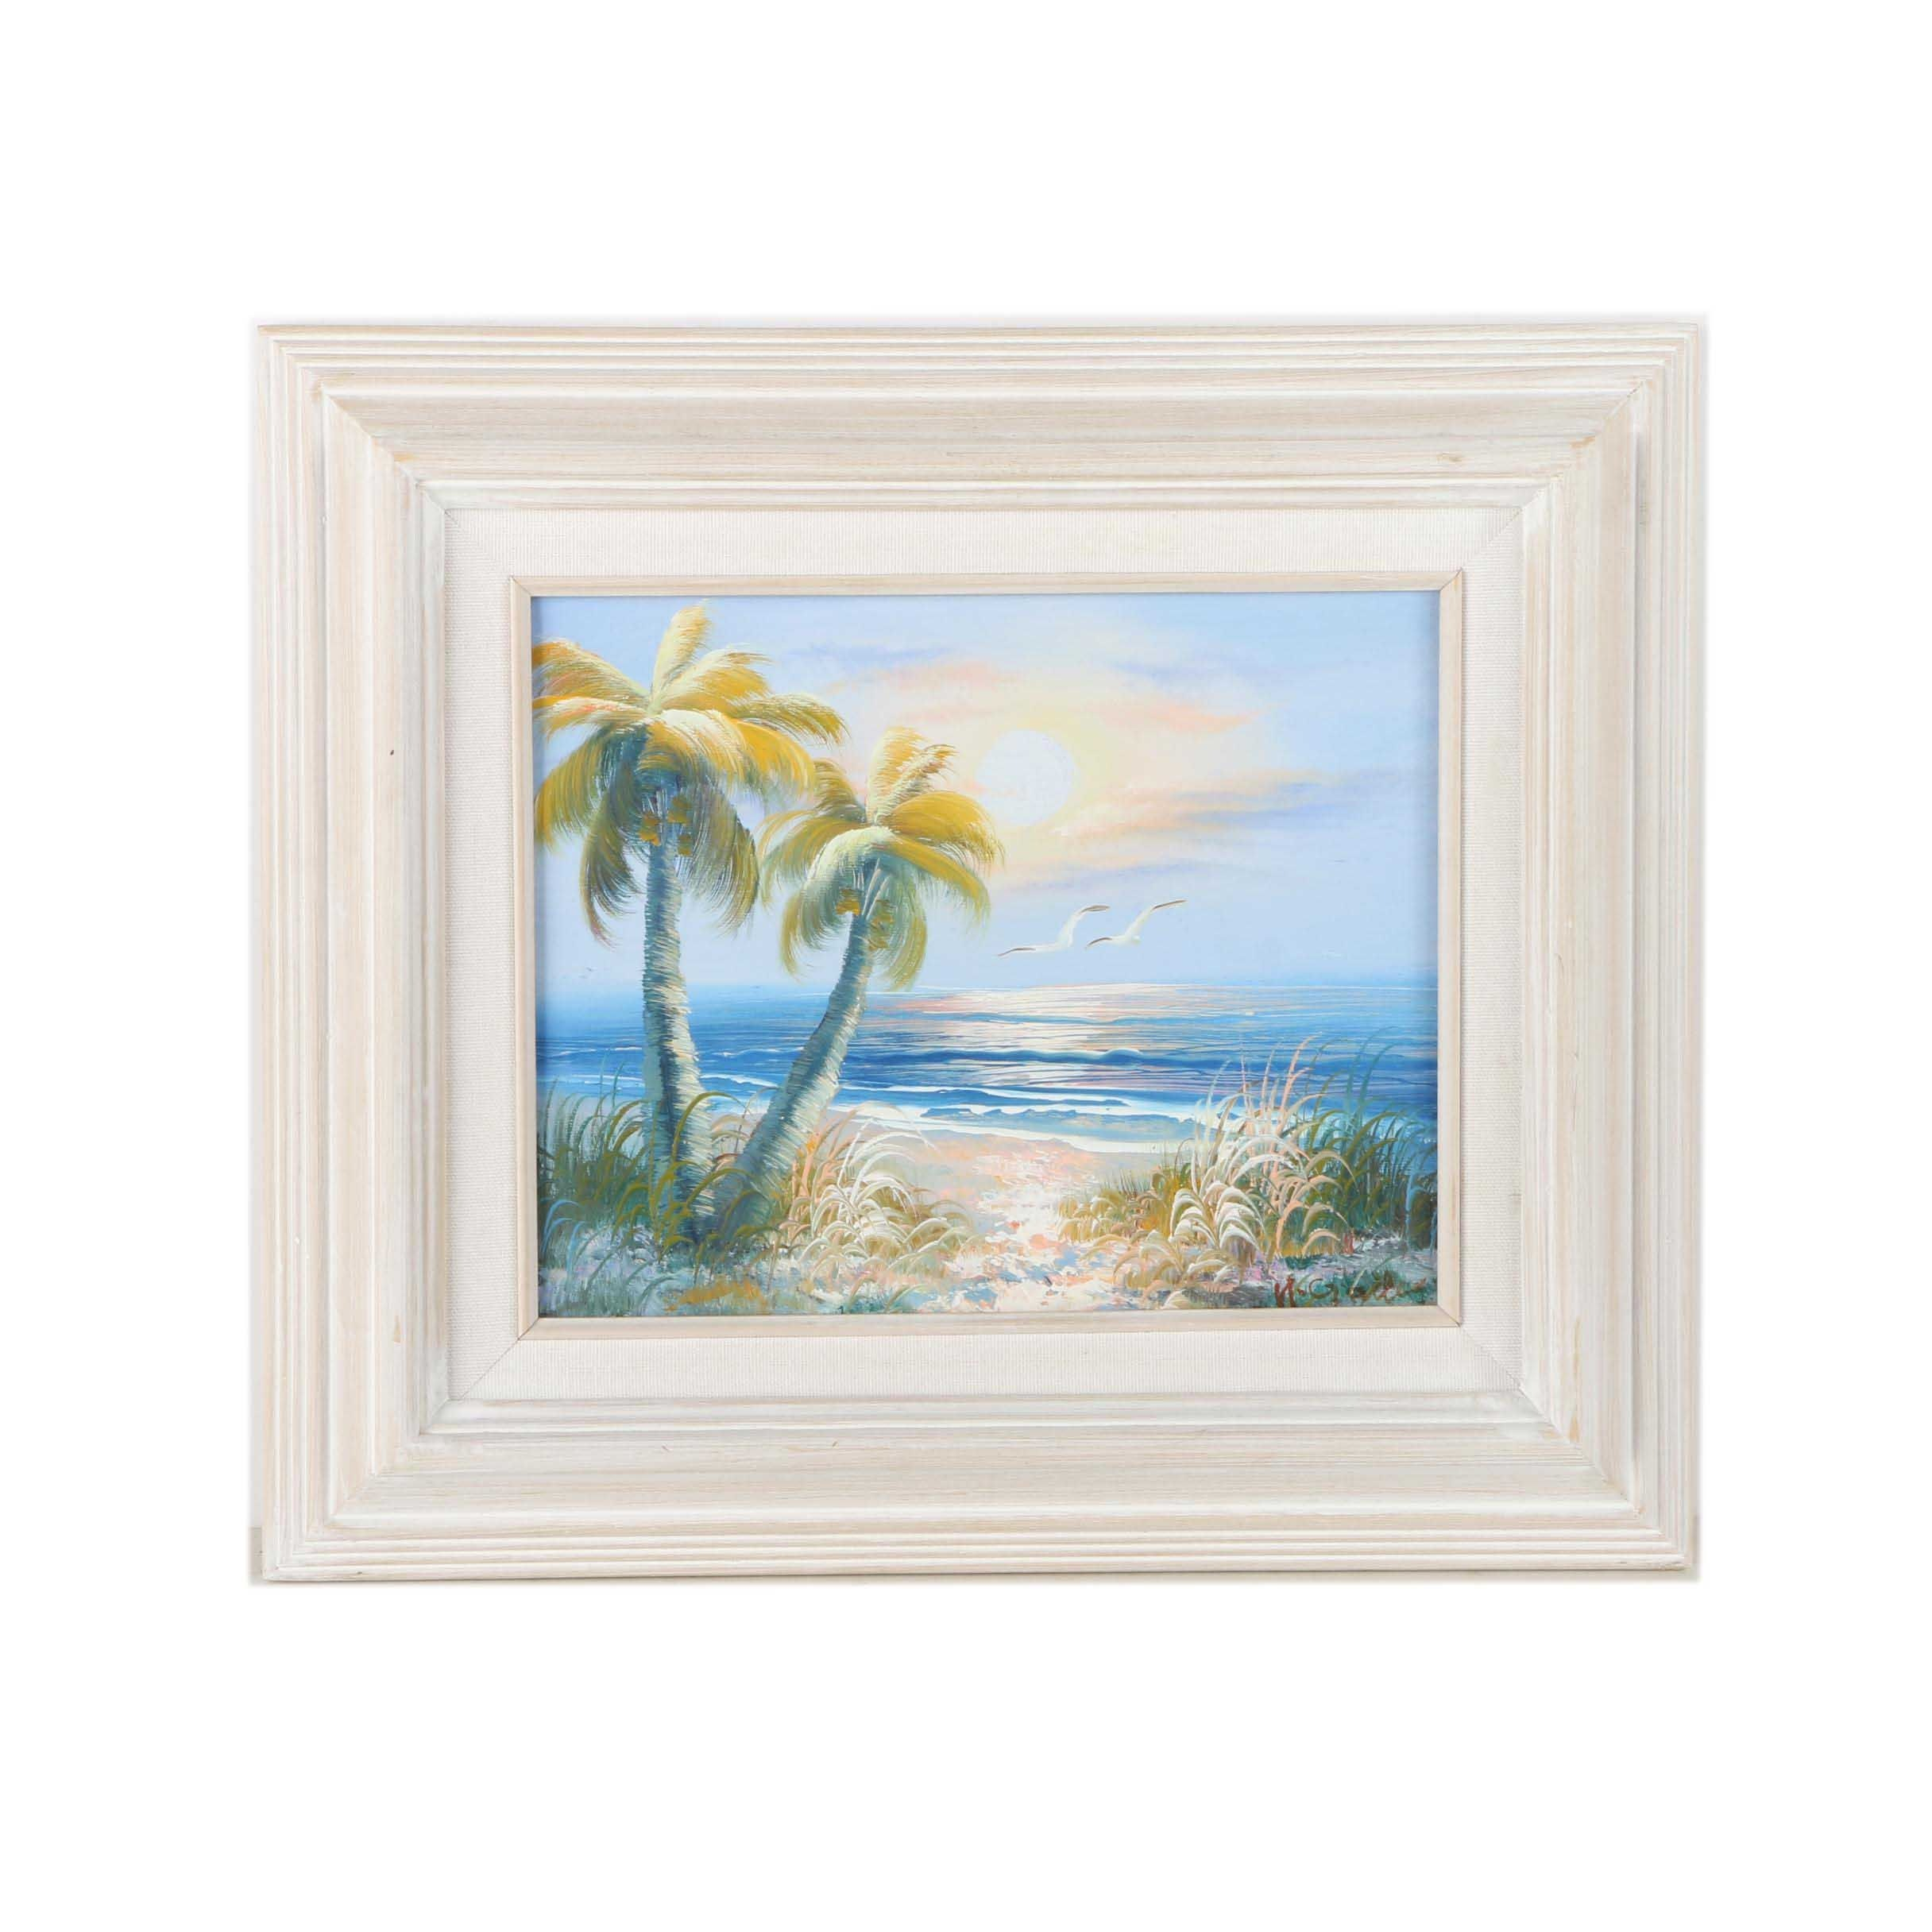 H. Gailey Landscape Oil Painting on Canvas of Beach at Daybreak